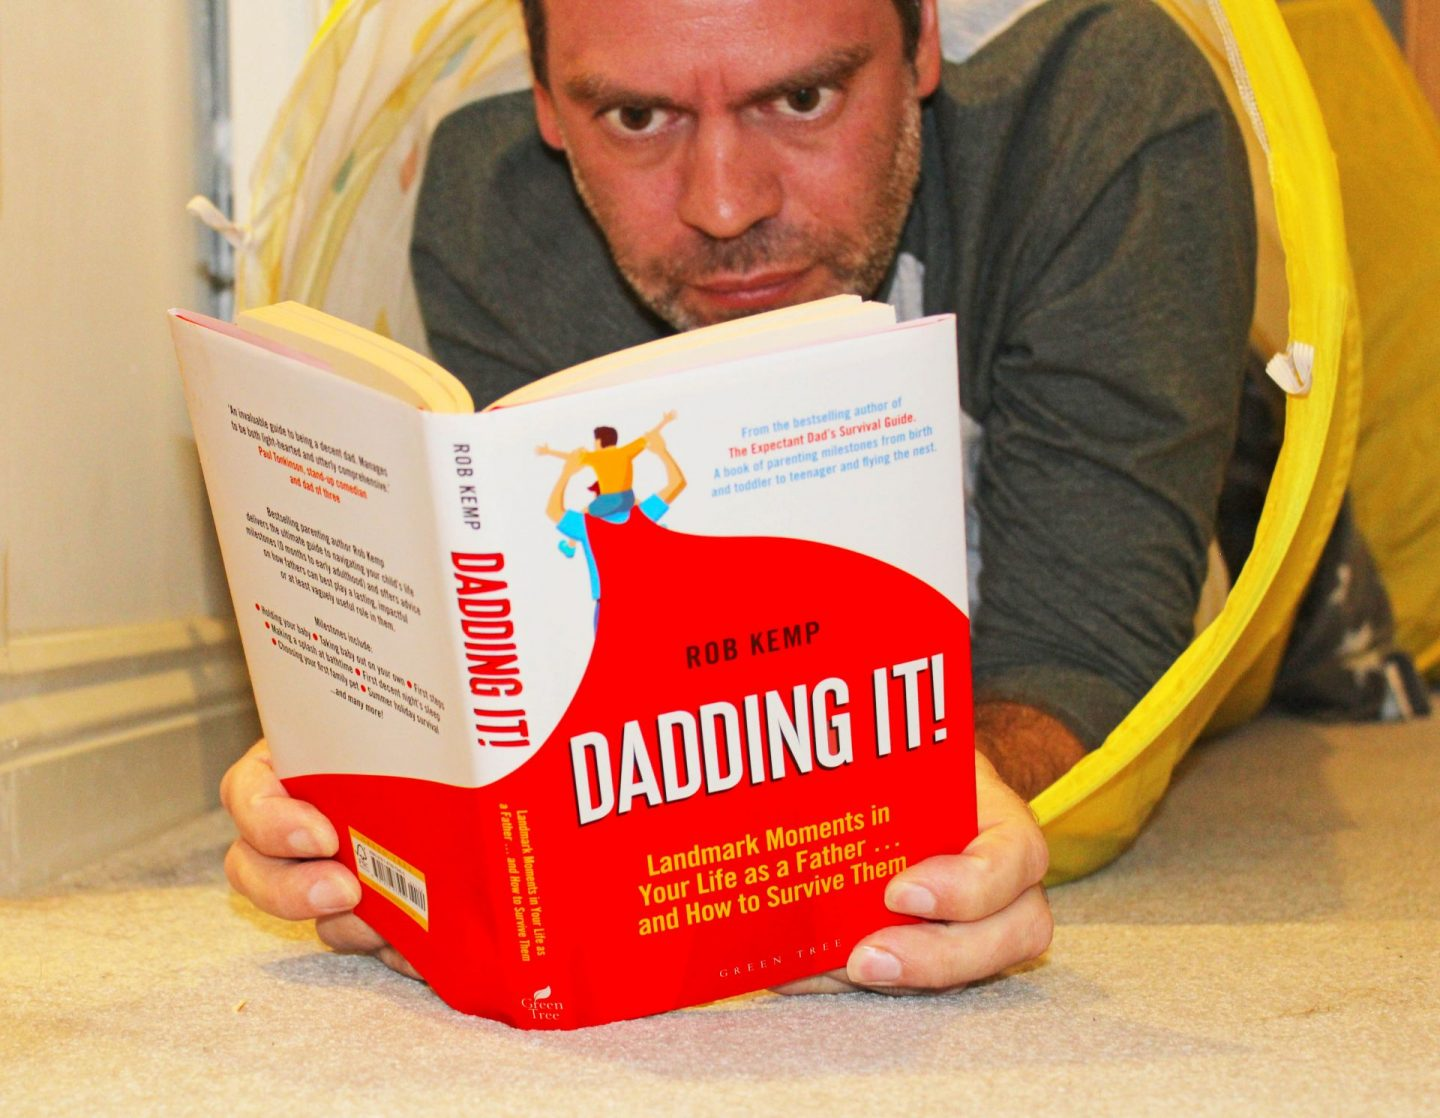 John Adams of Dadbloguk reading Dadding It! by Rob Kemp.